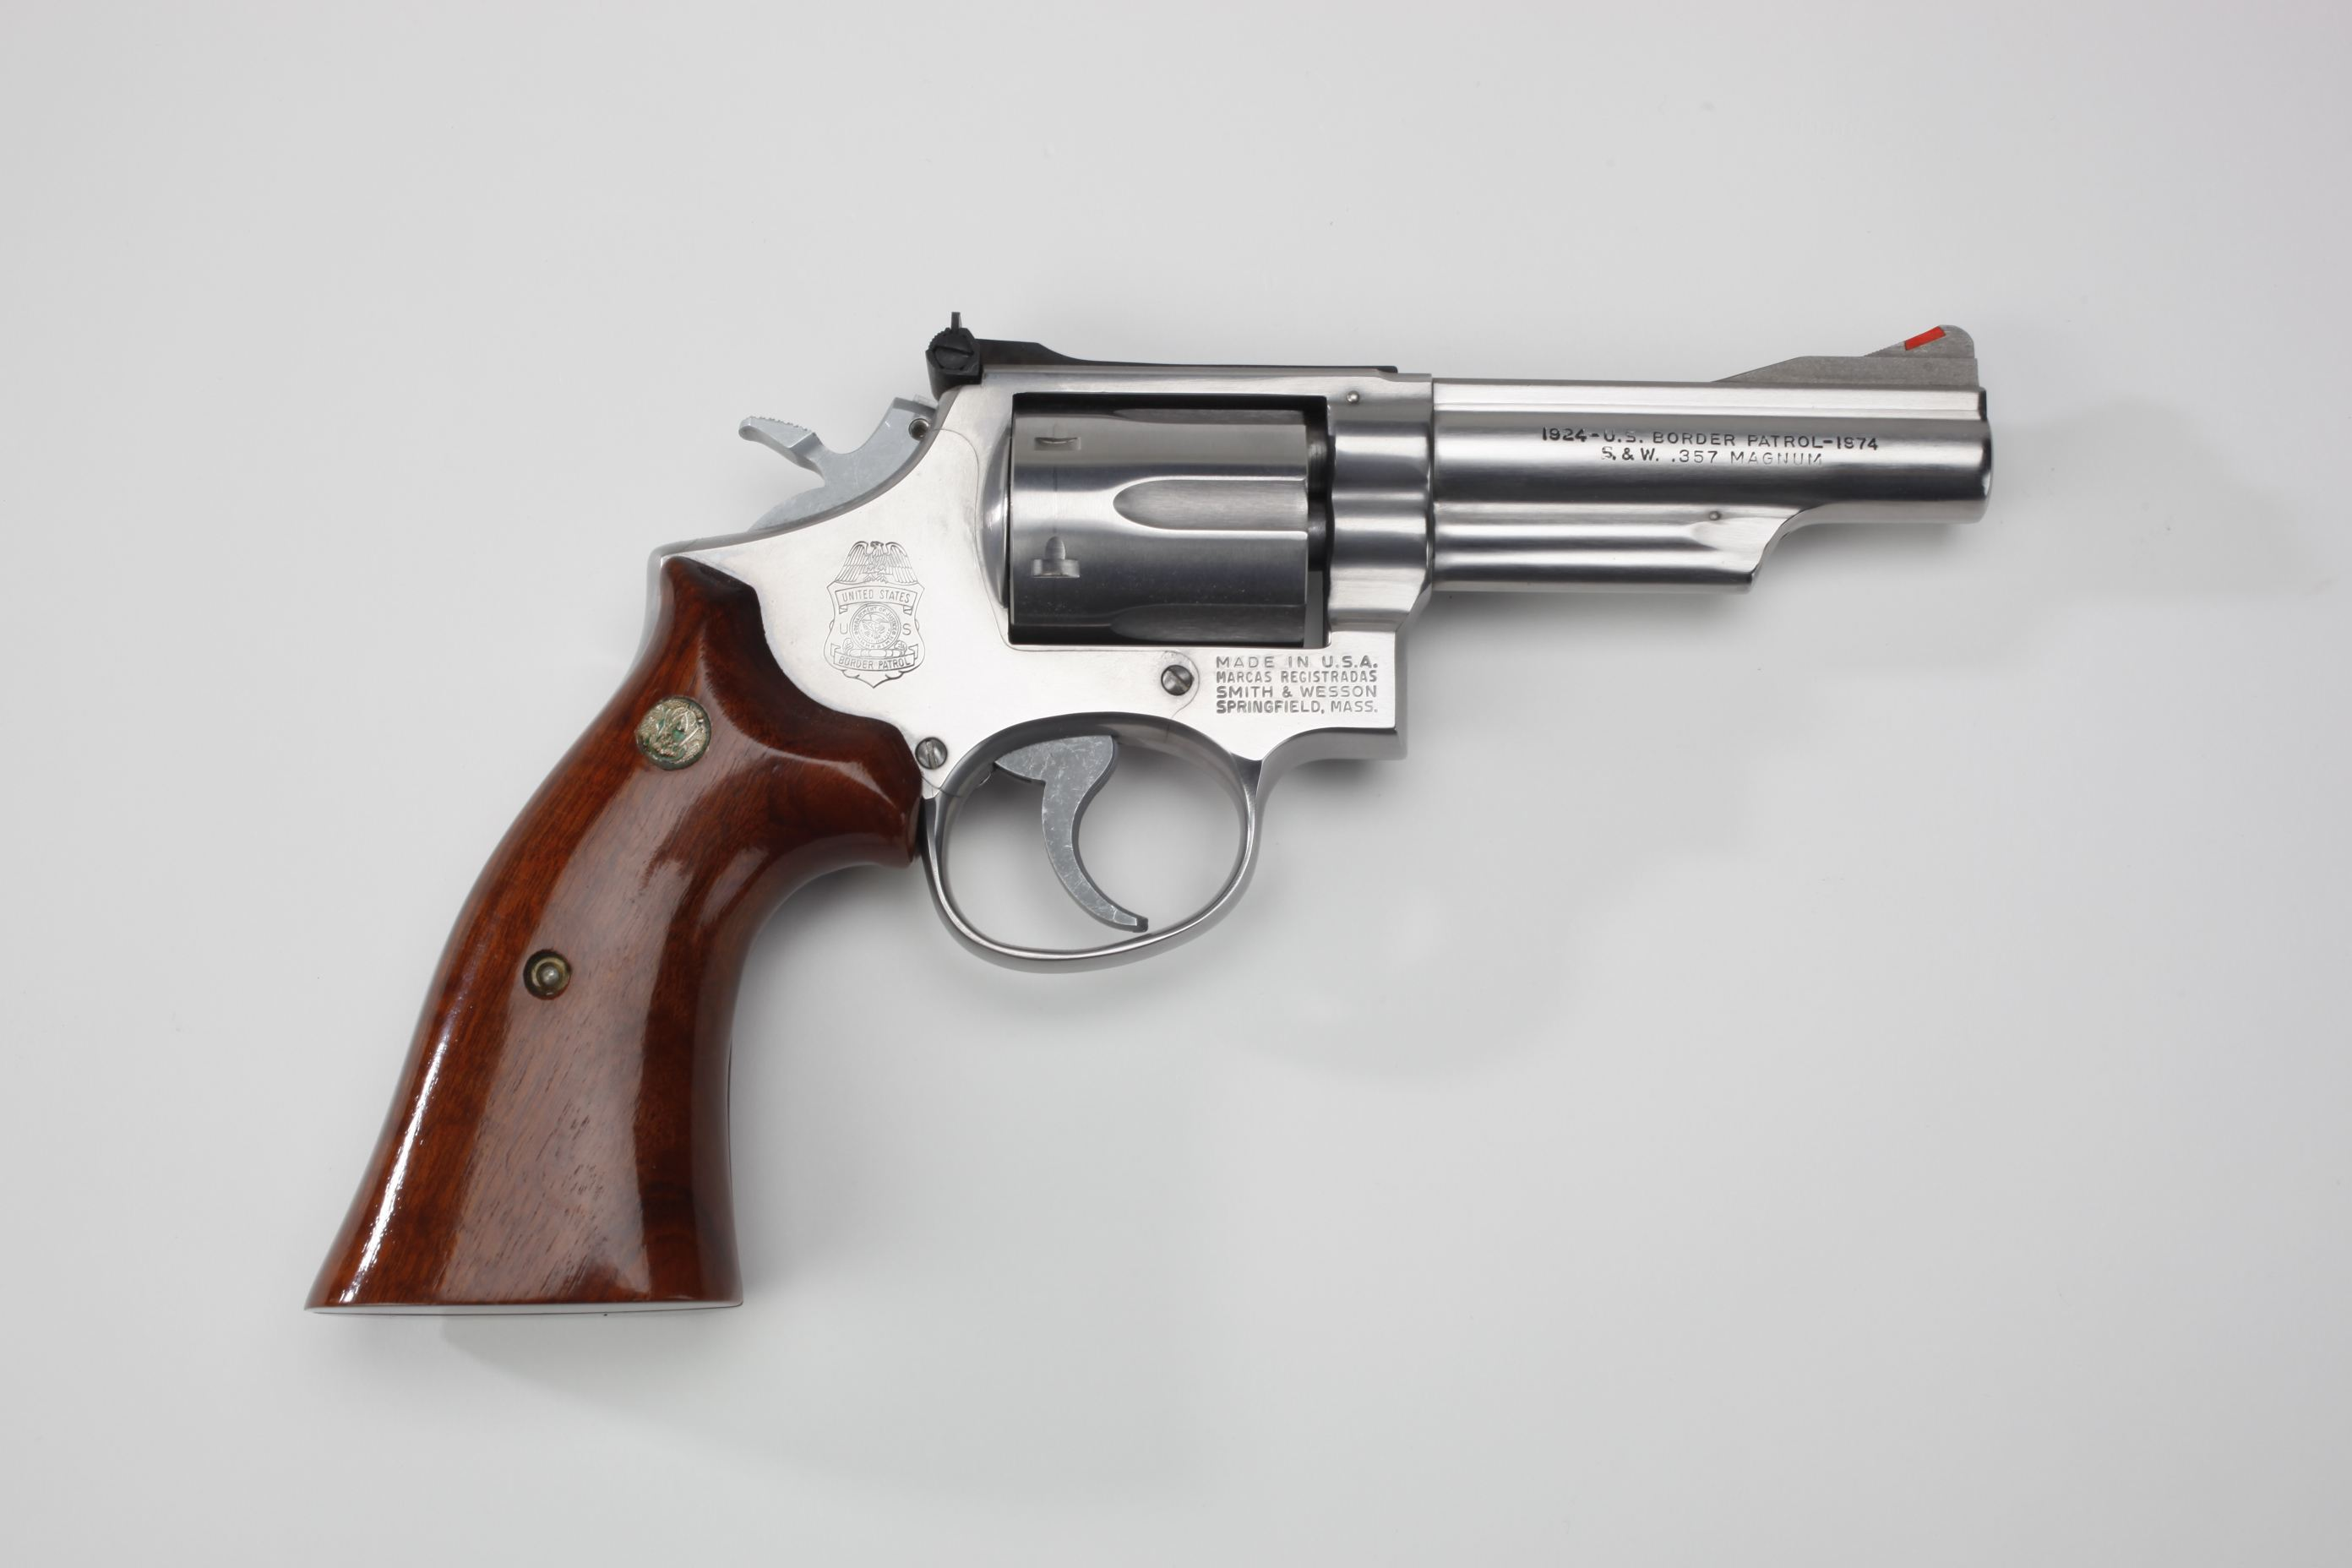 Smith & Wesson Model 66 U.S. Border Patrol Commemorative Revolver